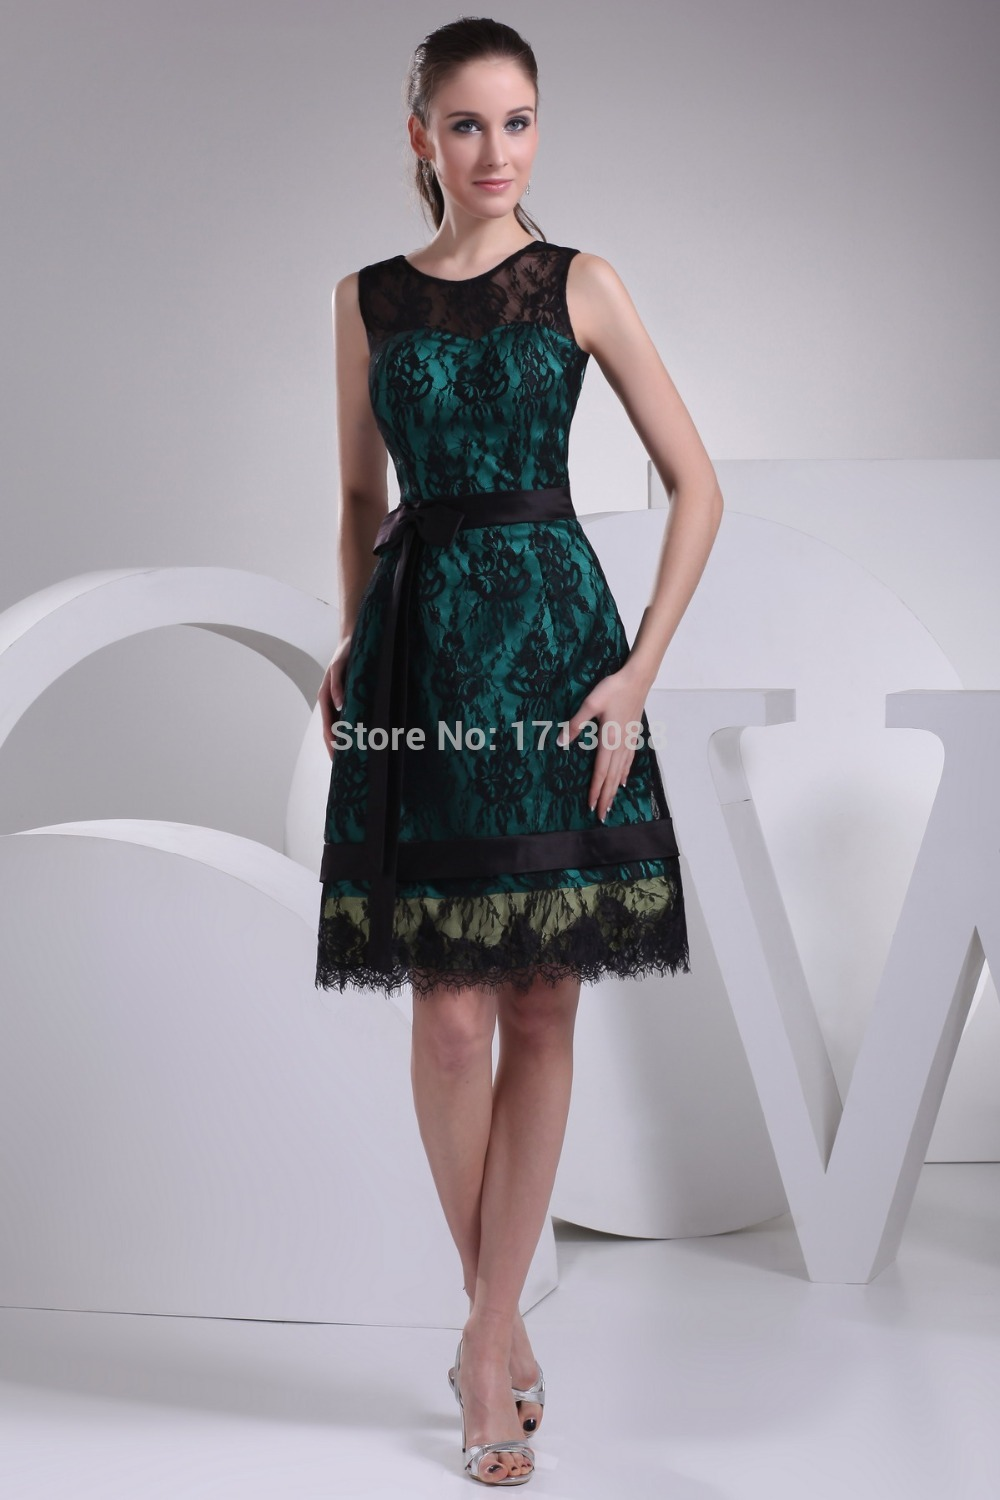 Casual Mother Of The Bride Dresses With Sleeveless Knee